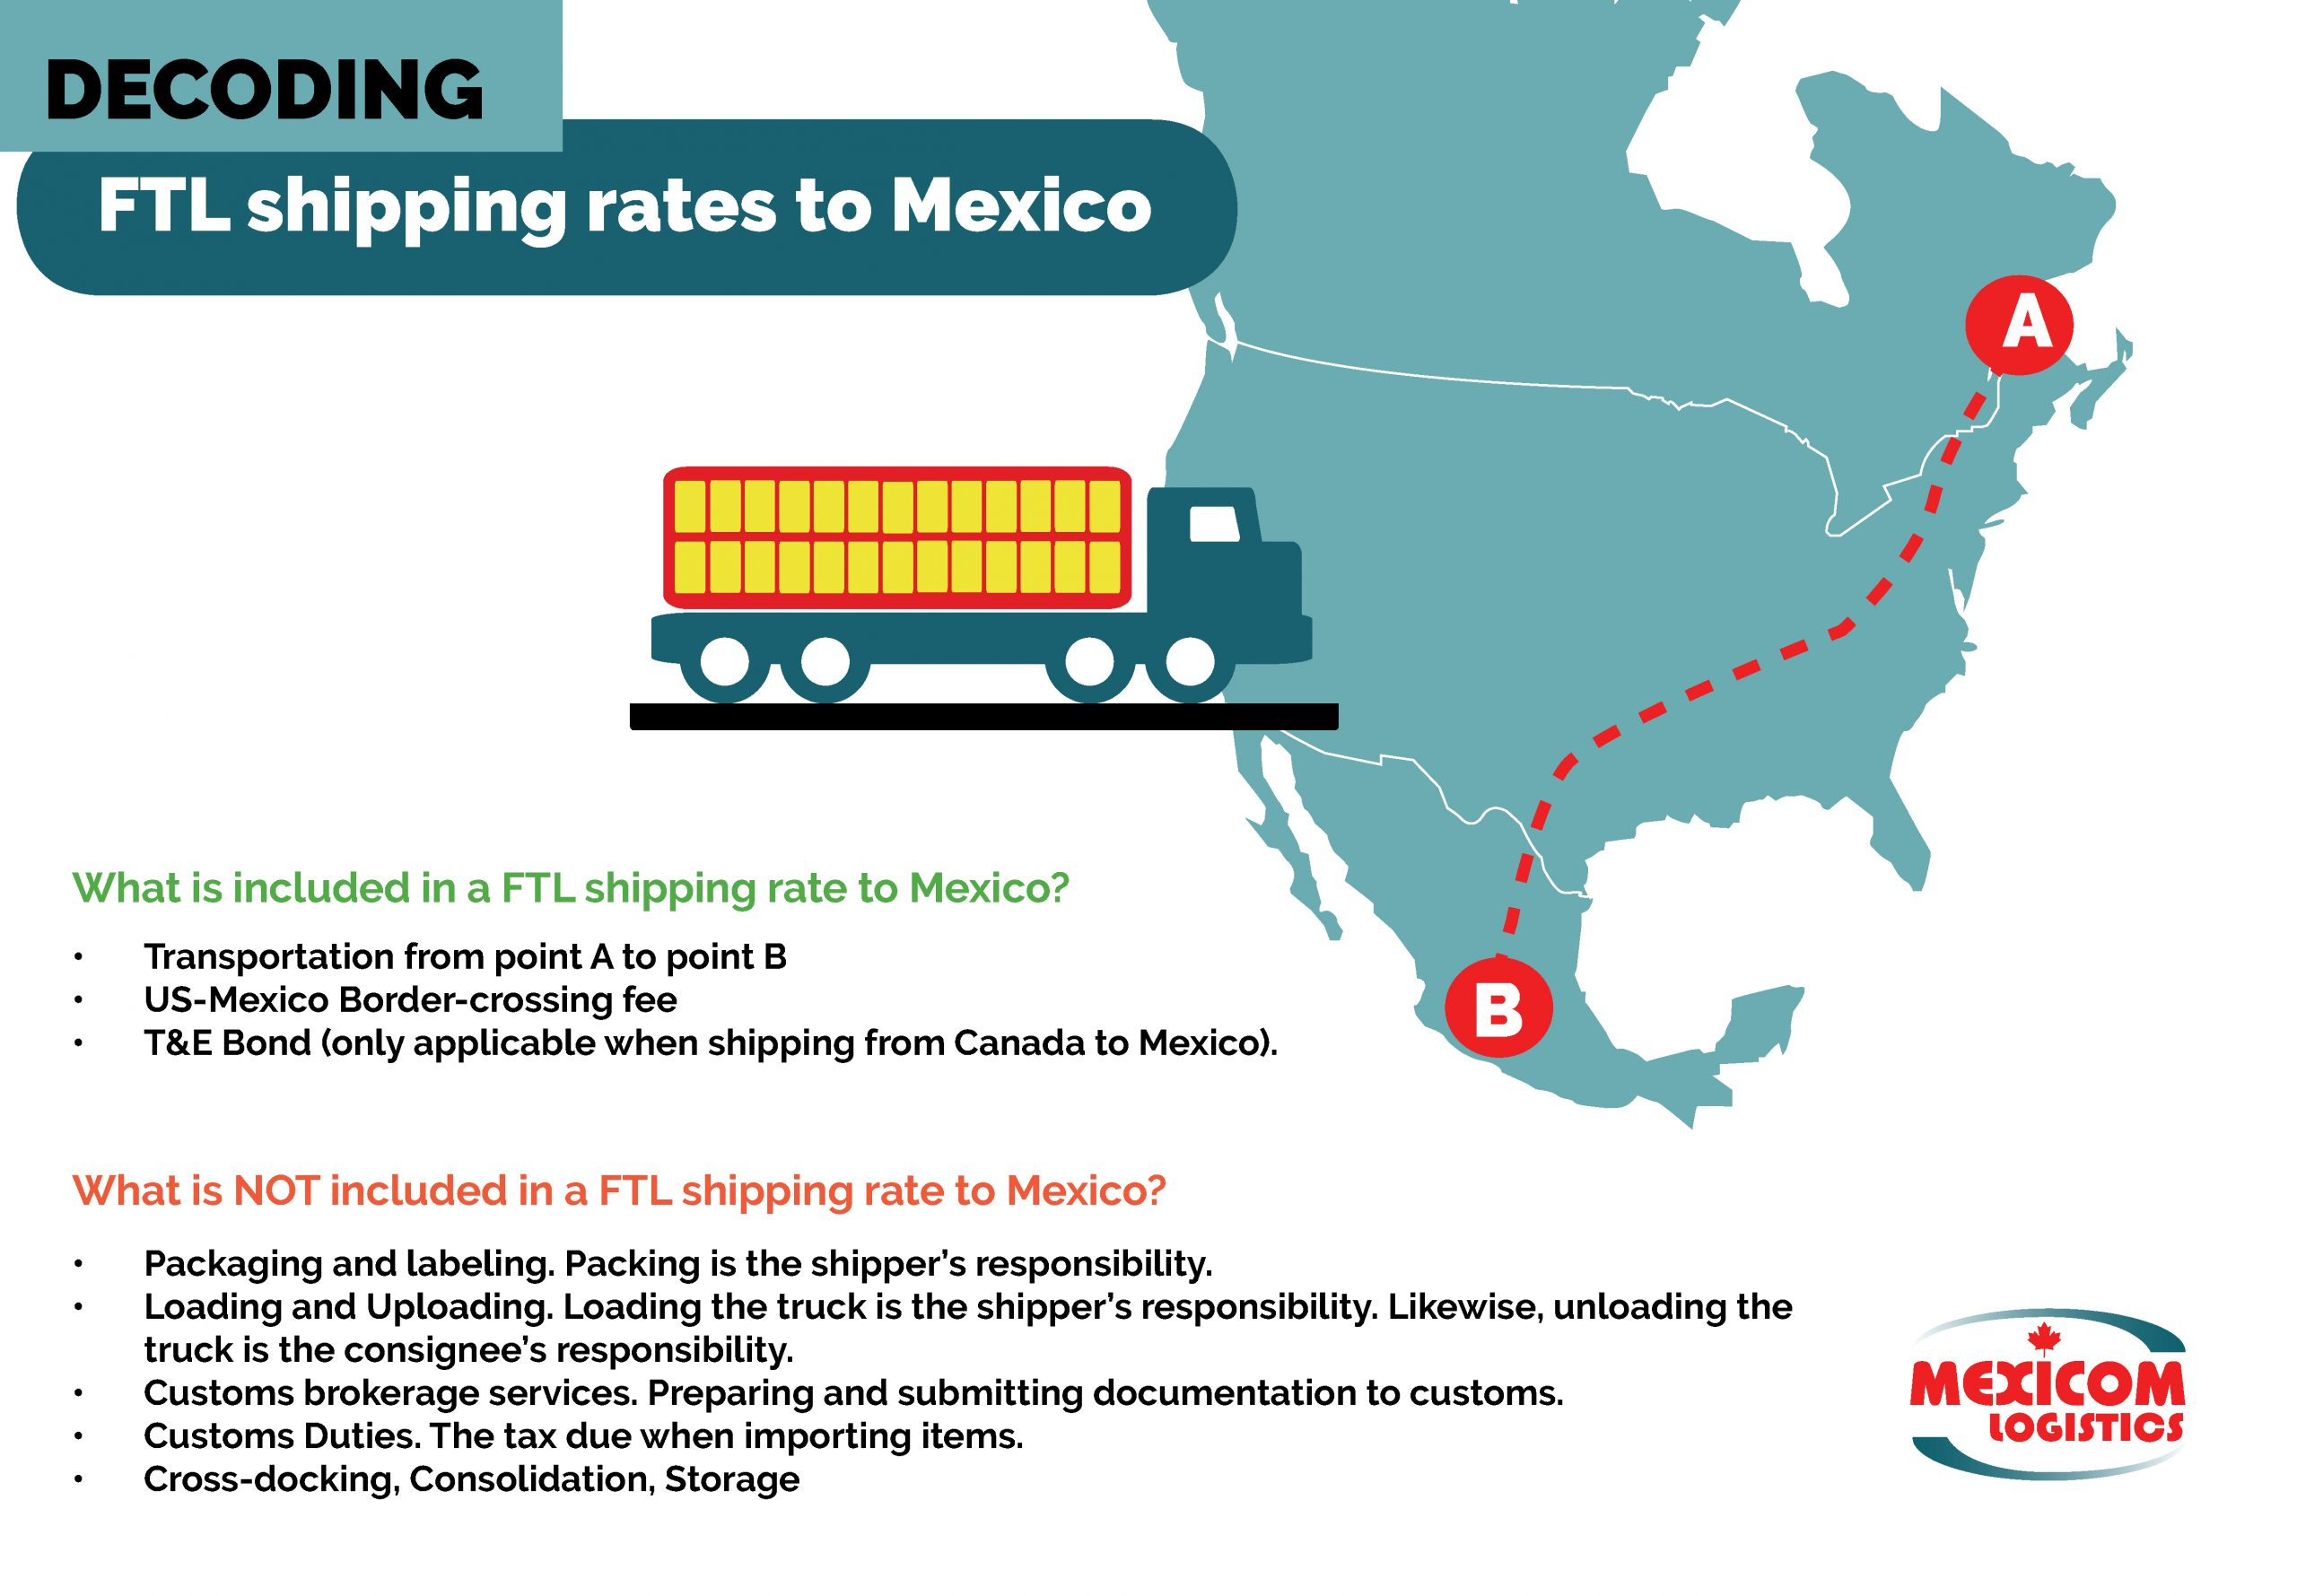 What is included (and what is not) in a FTL shipping rate to Mexico